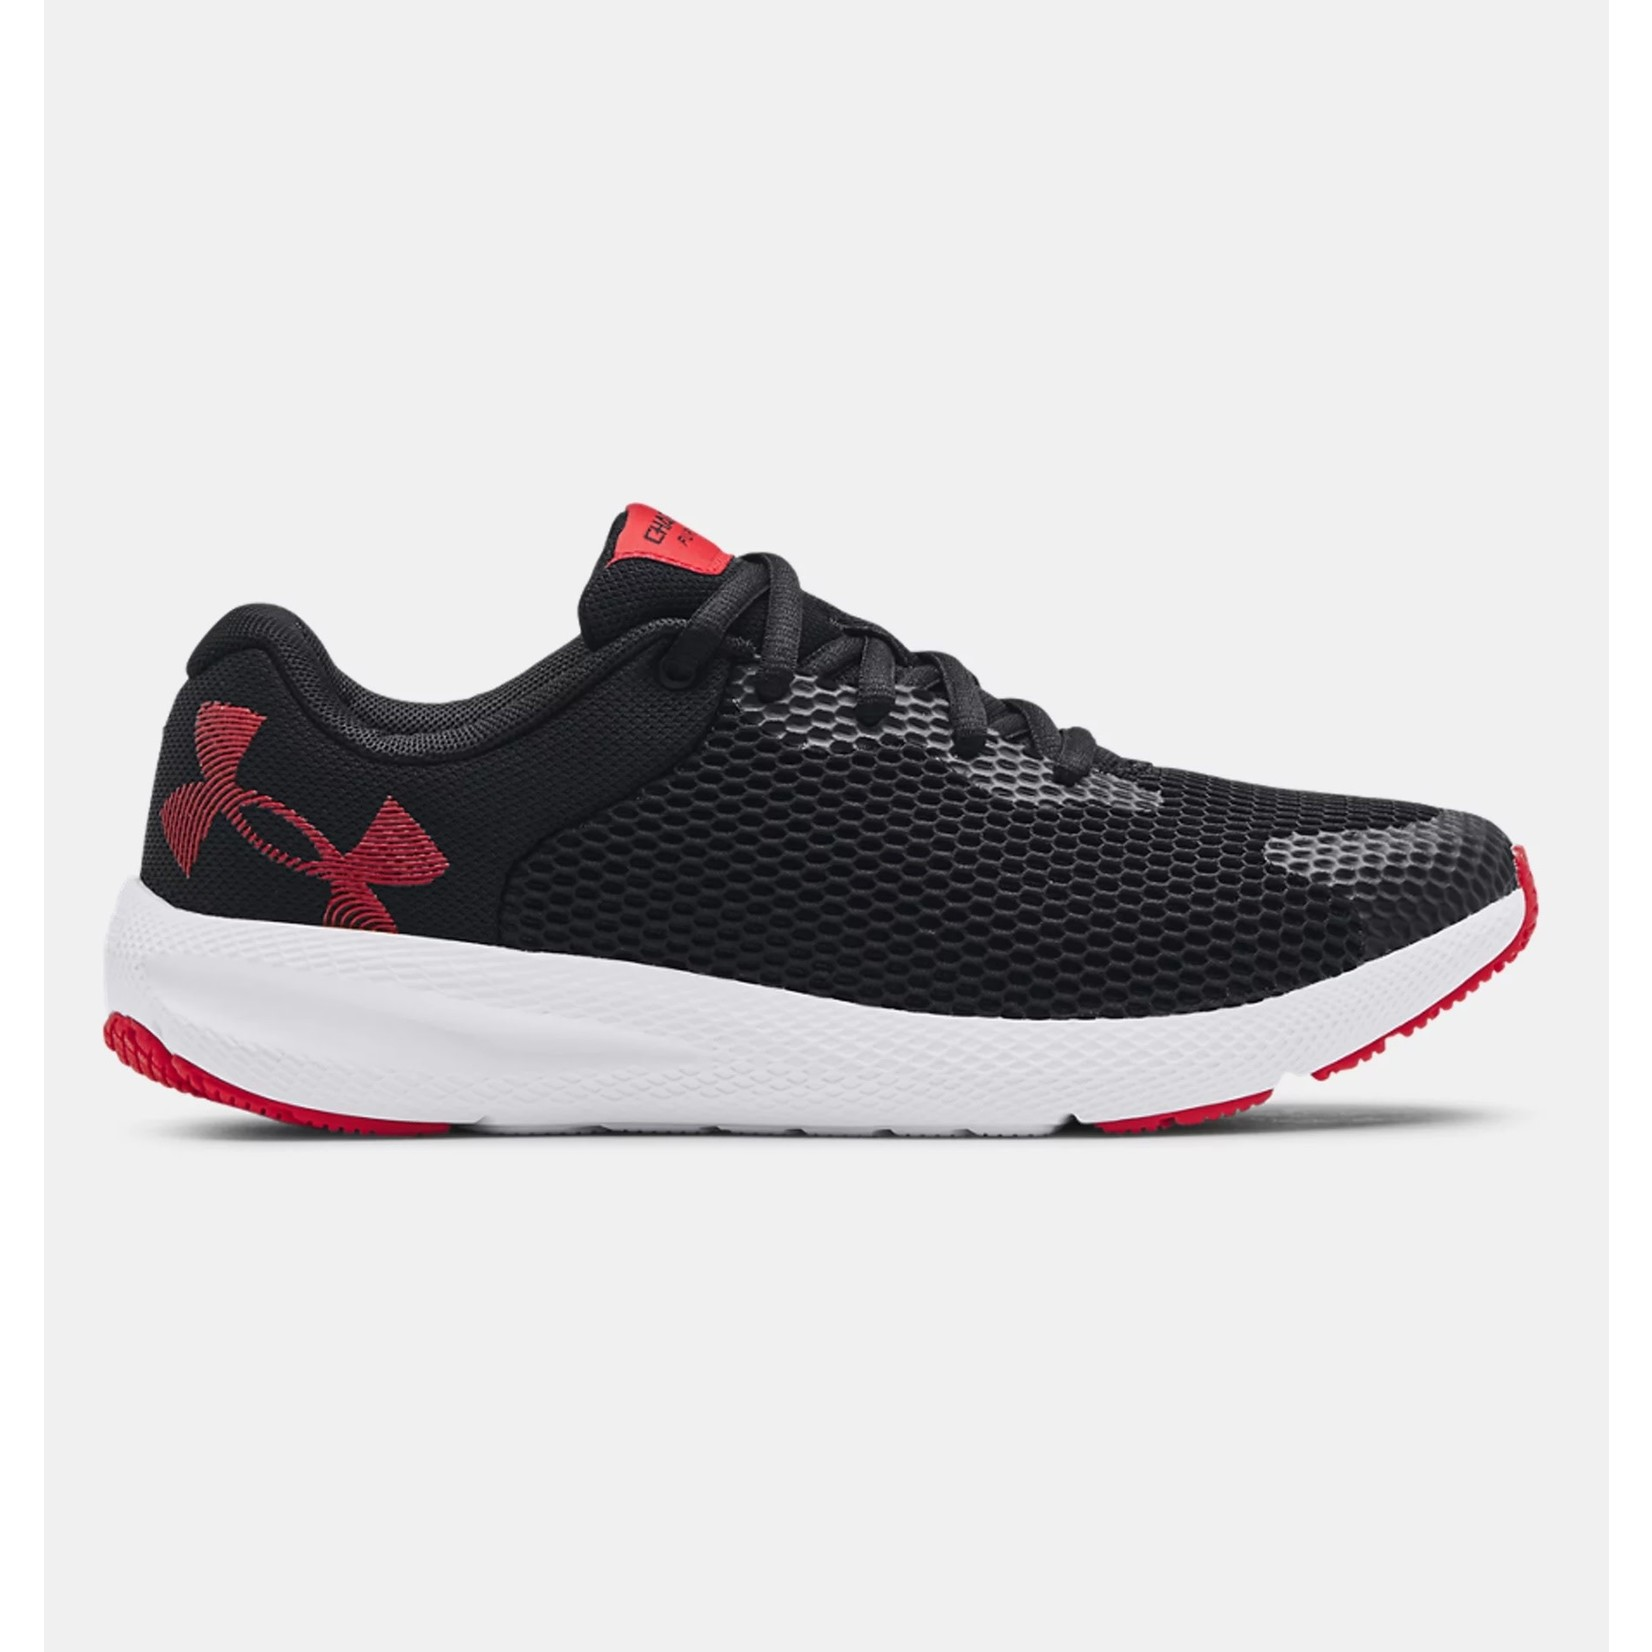 Under Armour Under Armour Running Shoes, Charged Pursuit 2, Boys